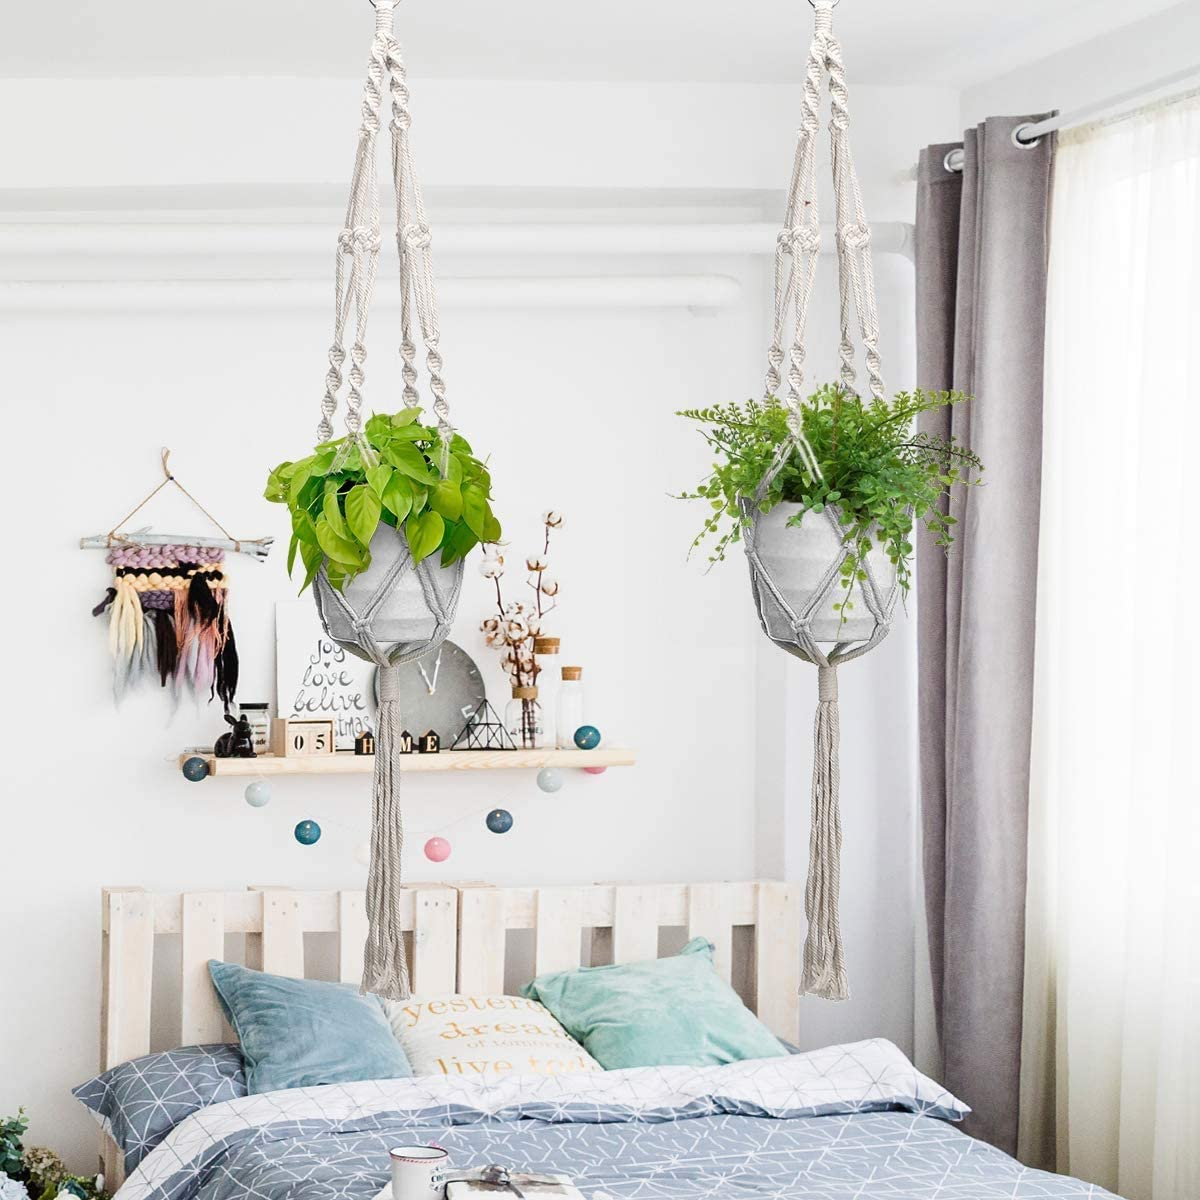 Macrame Plant Hangers 2 Pack and Hooks,Hanging Planter Basket Decorative Flower Pot Holder Jute Rope with Beads No Tassels for Indoor Outdoor Car Home Decor Party Supplies Gift Box